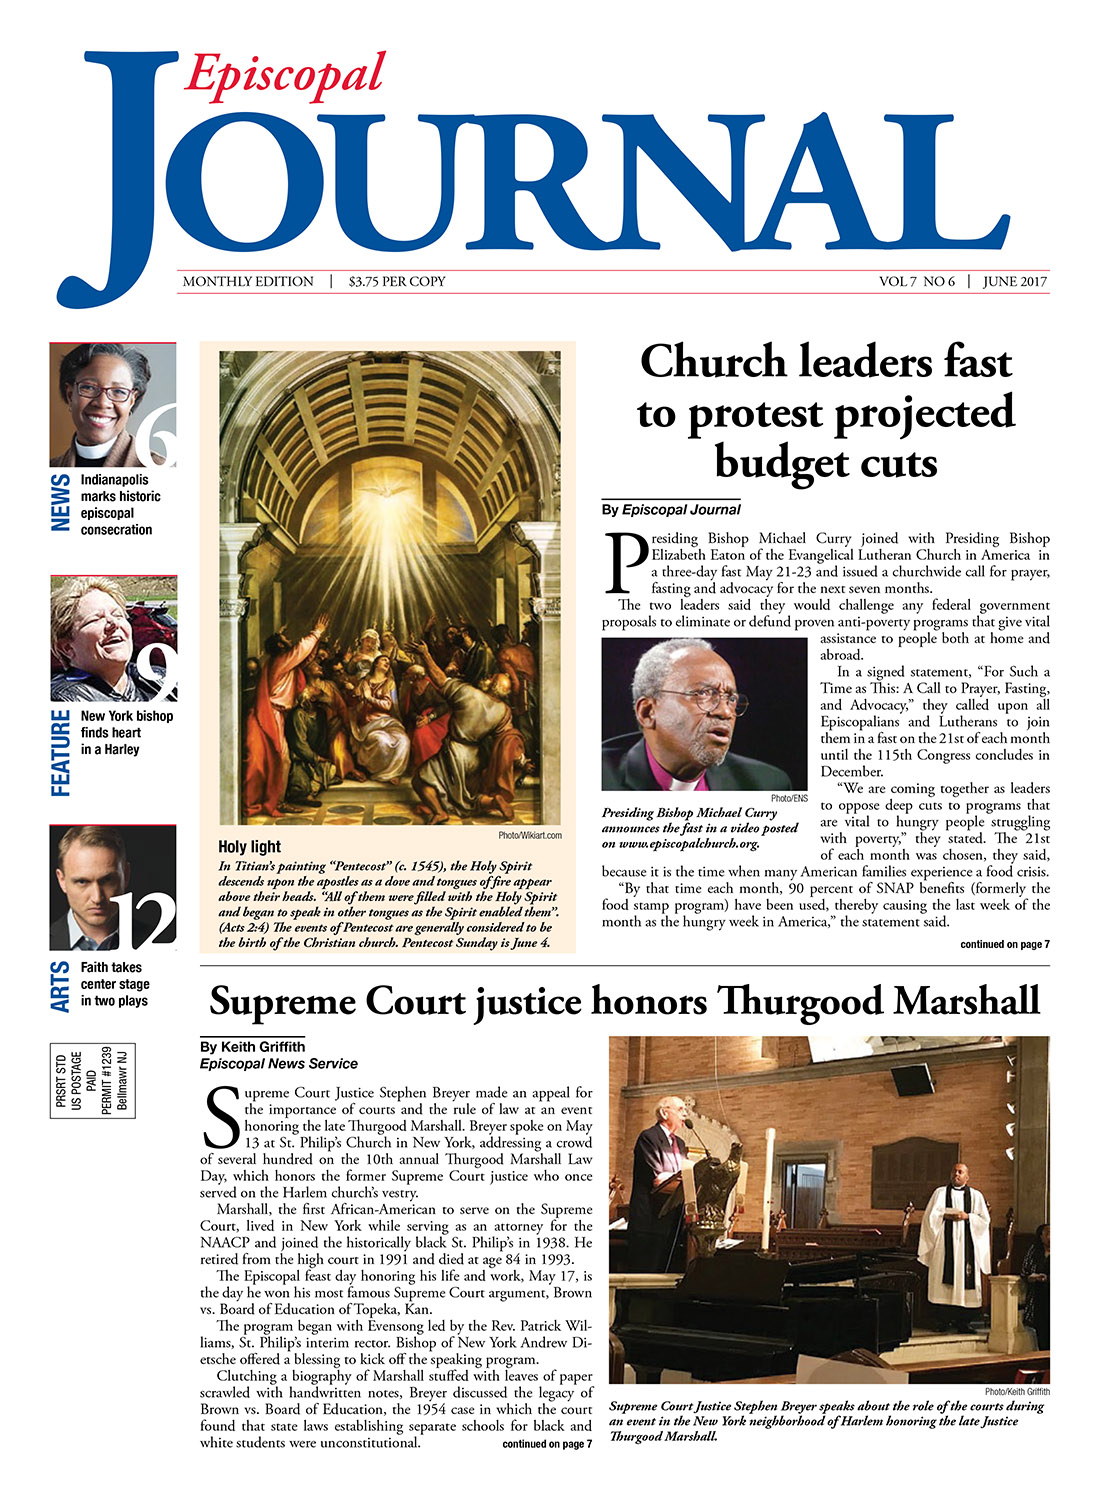 Episcopal Journal, June 2017